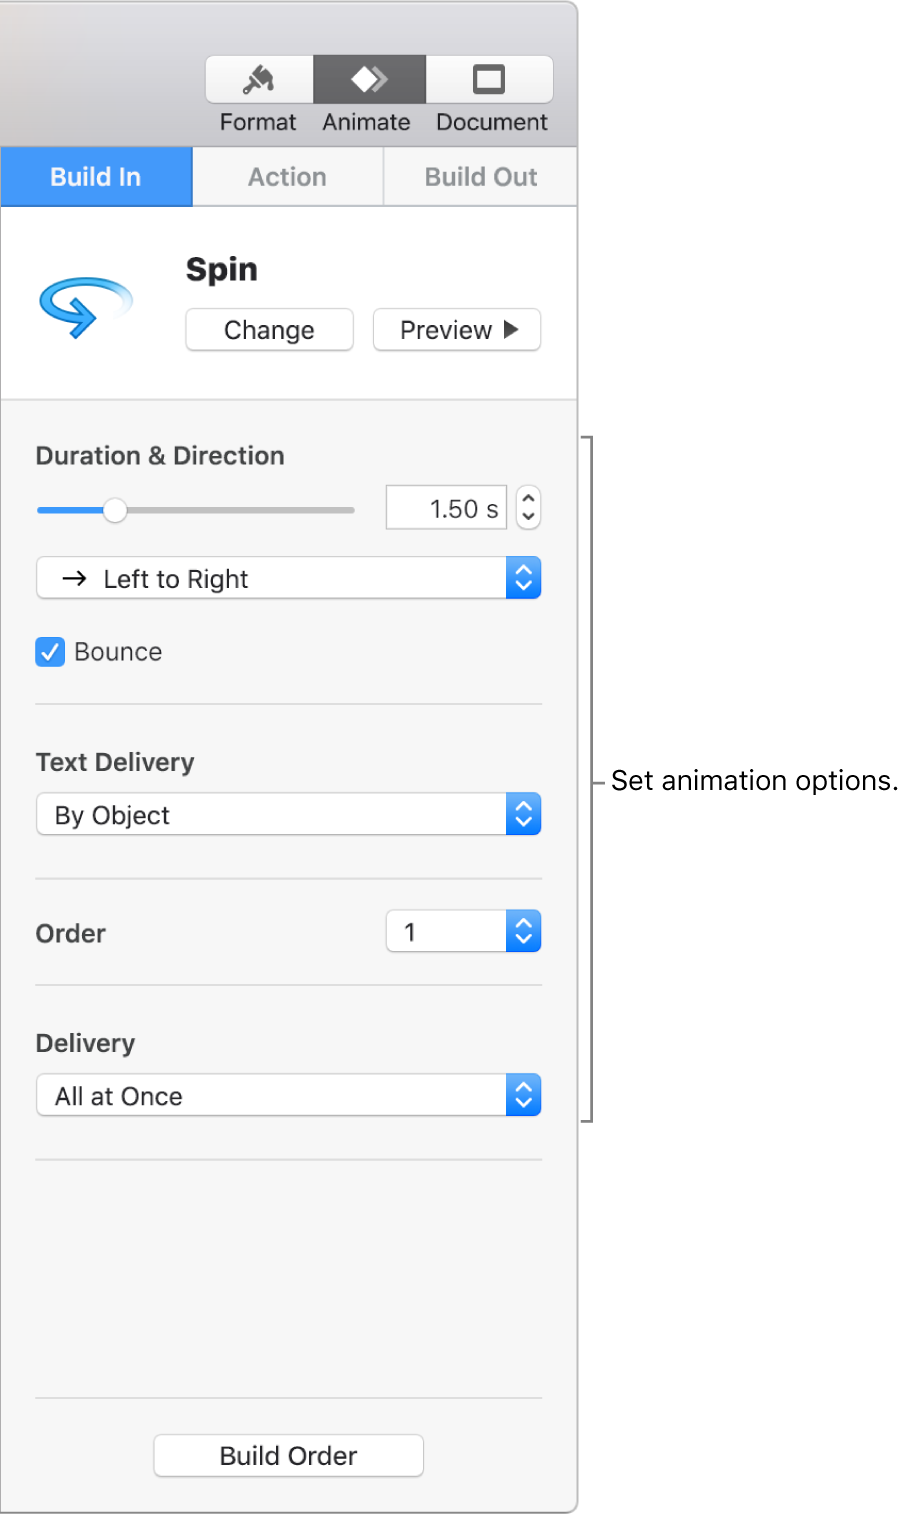 Build-in options in the Animate section of the sidebar.